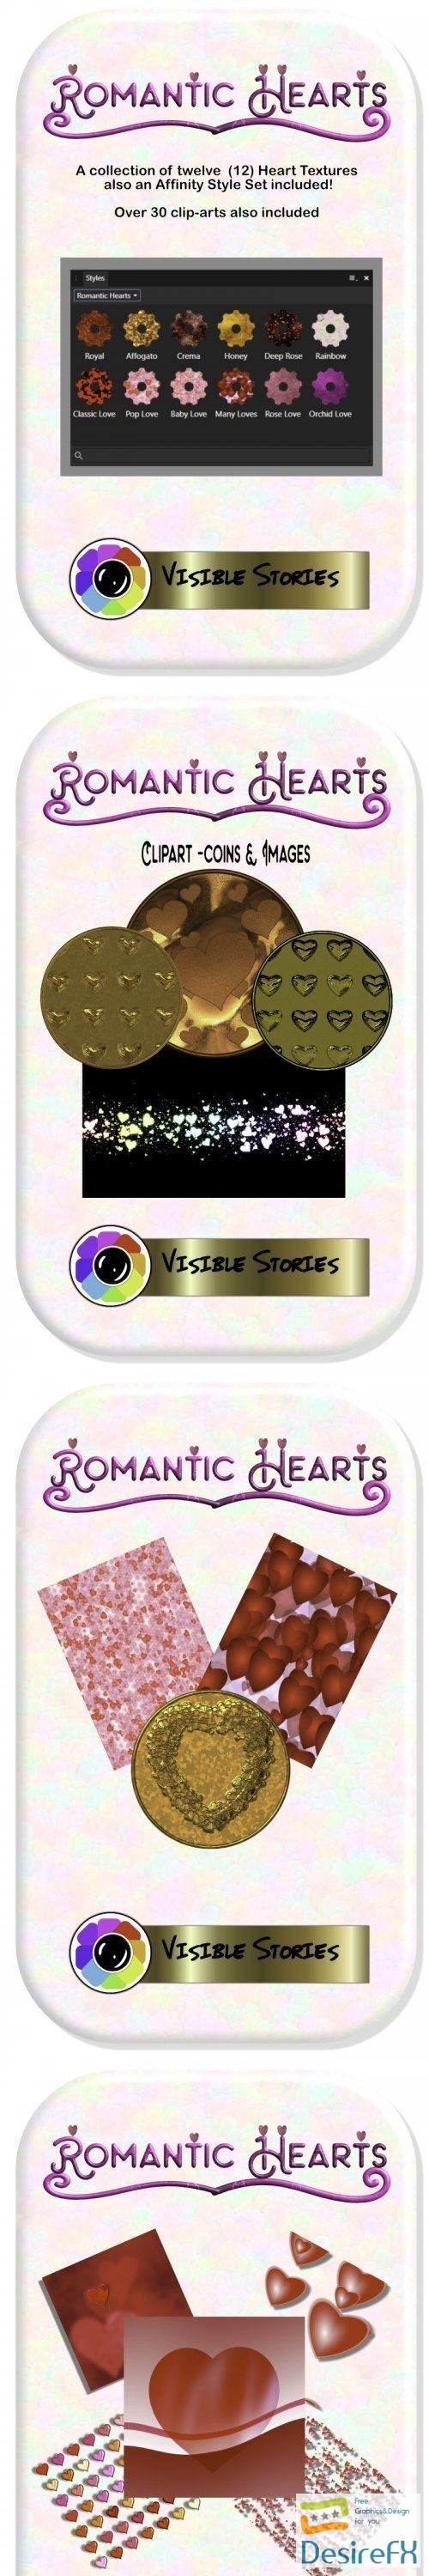 styles-asl - Romantic Hearts